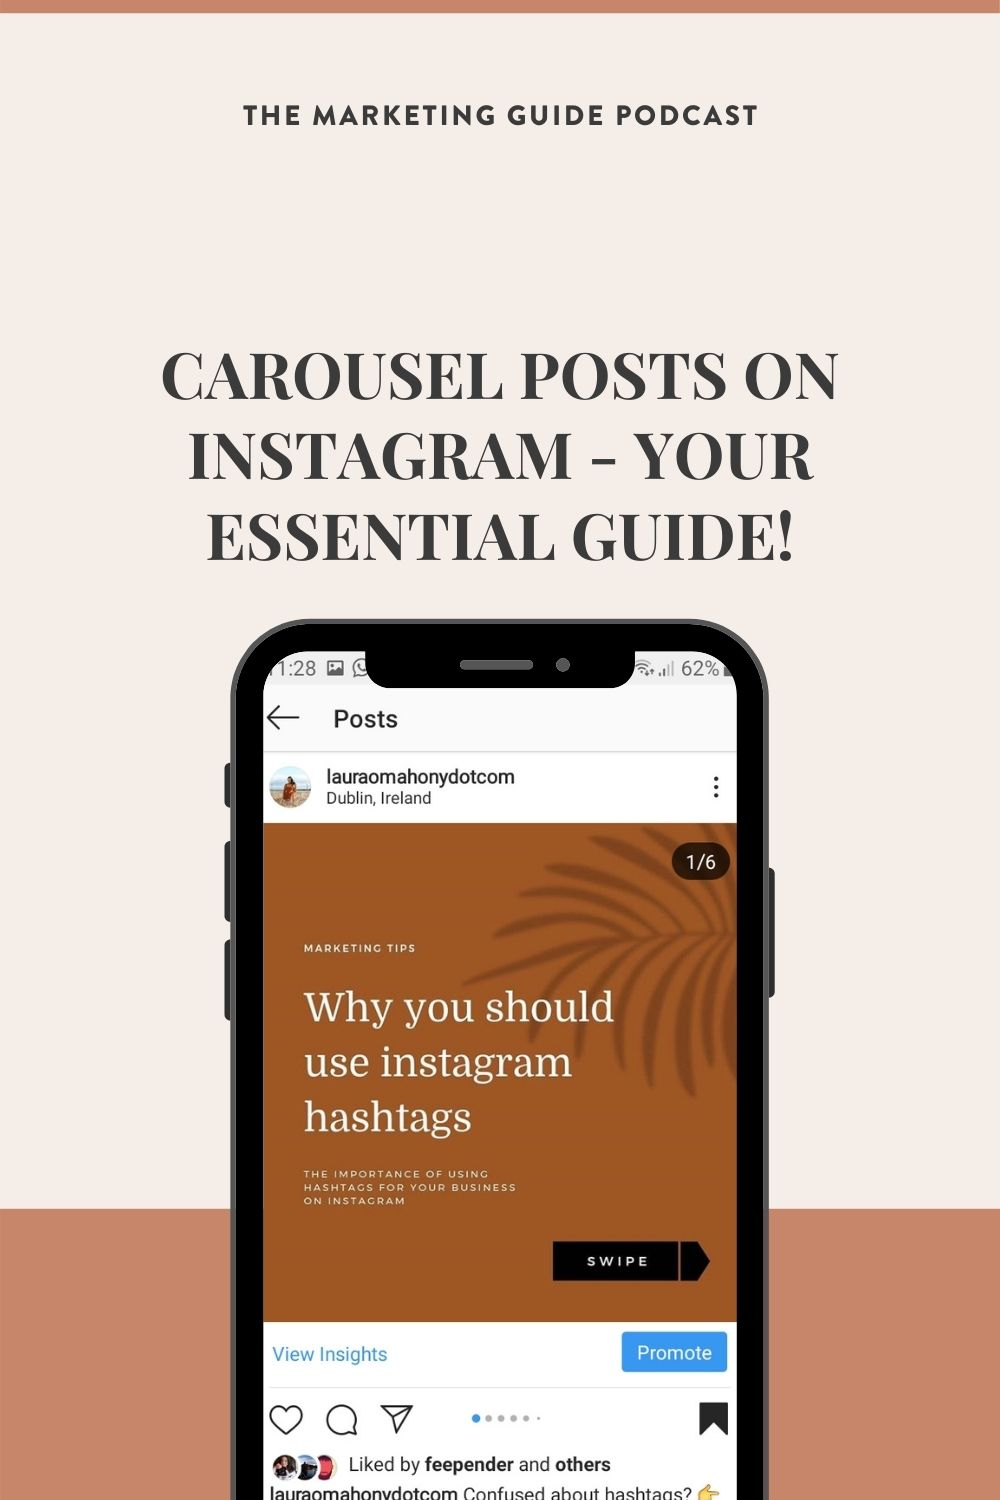 Episode 40 - Carousel The Marketing Guide Podcast episode 40 Carousel Posts on Instagram - Your essential guide